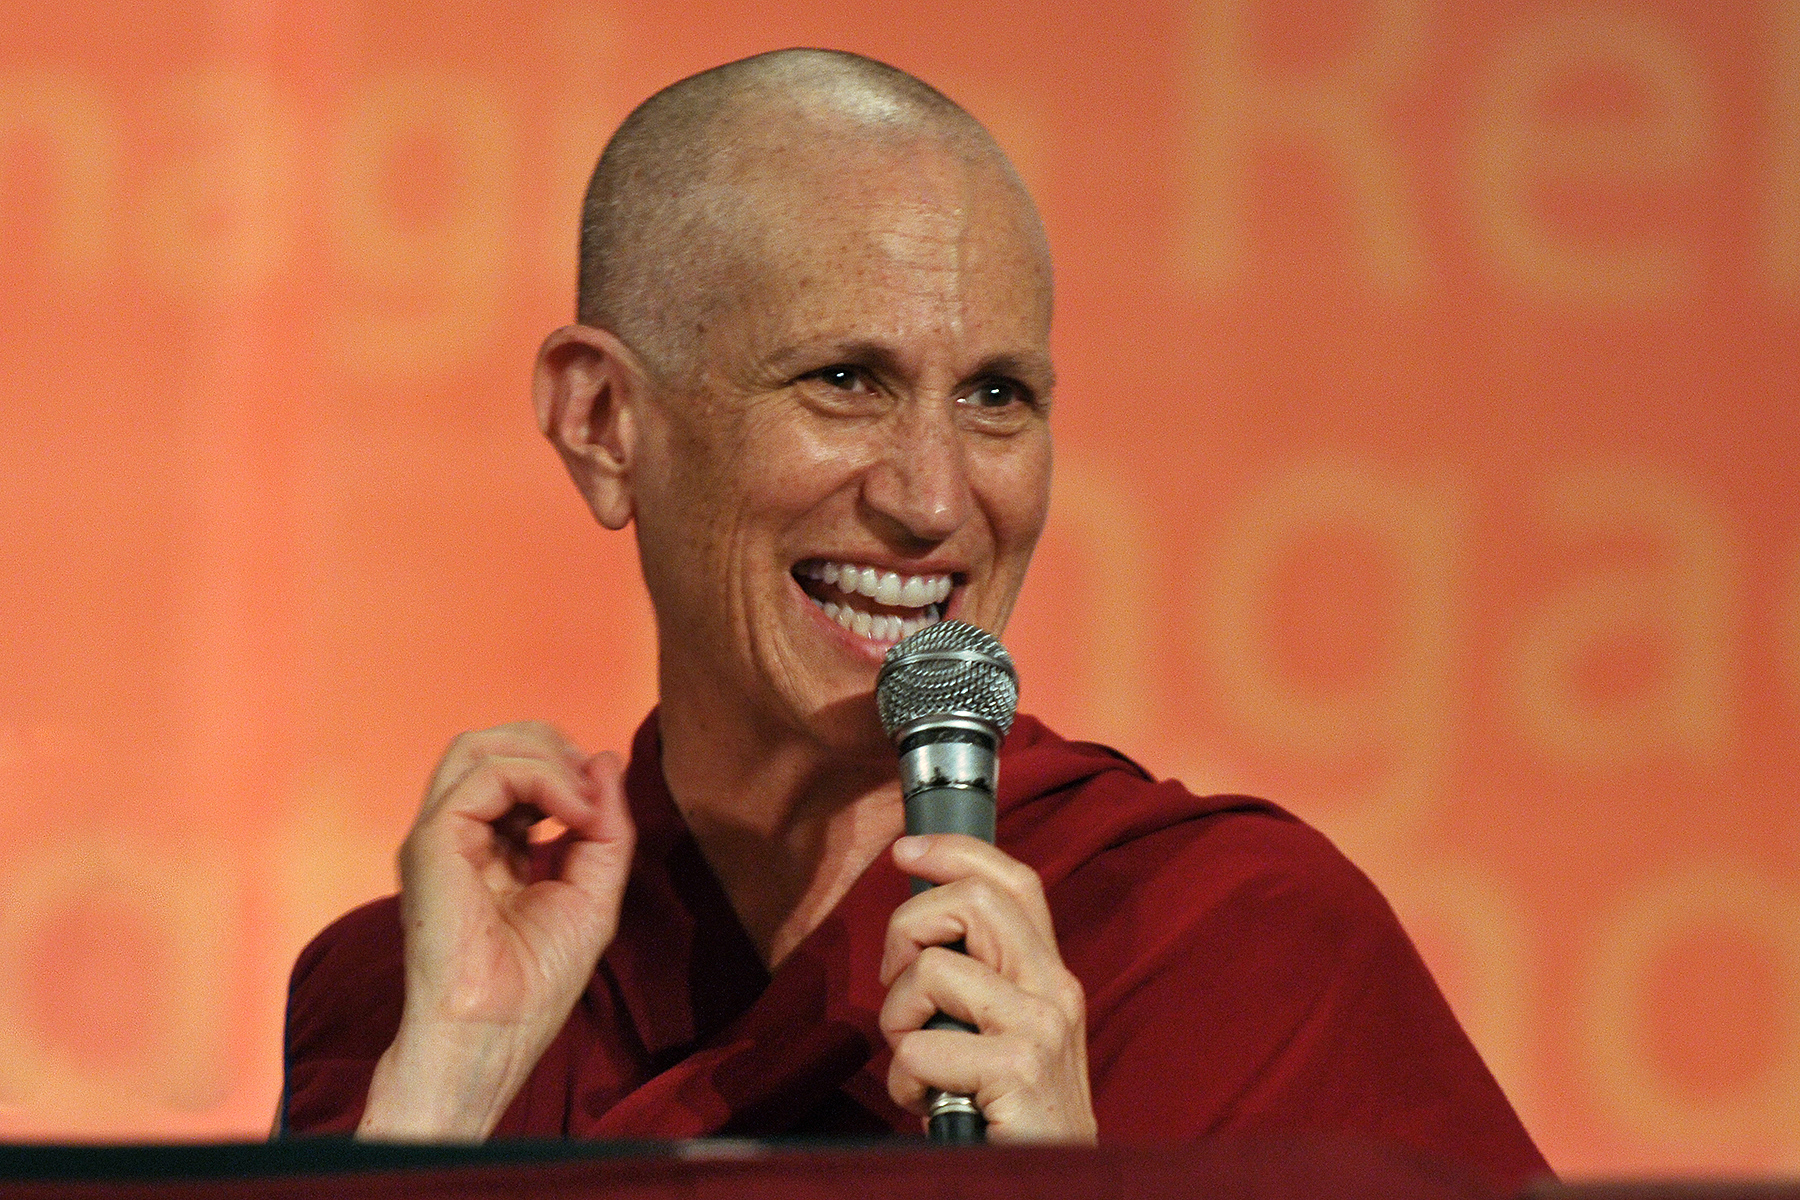 Venerable Chodron holding a microphone and smiling.